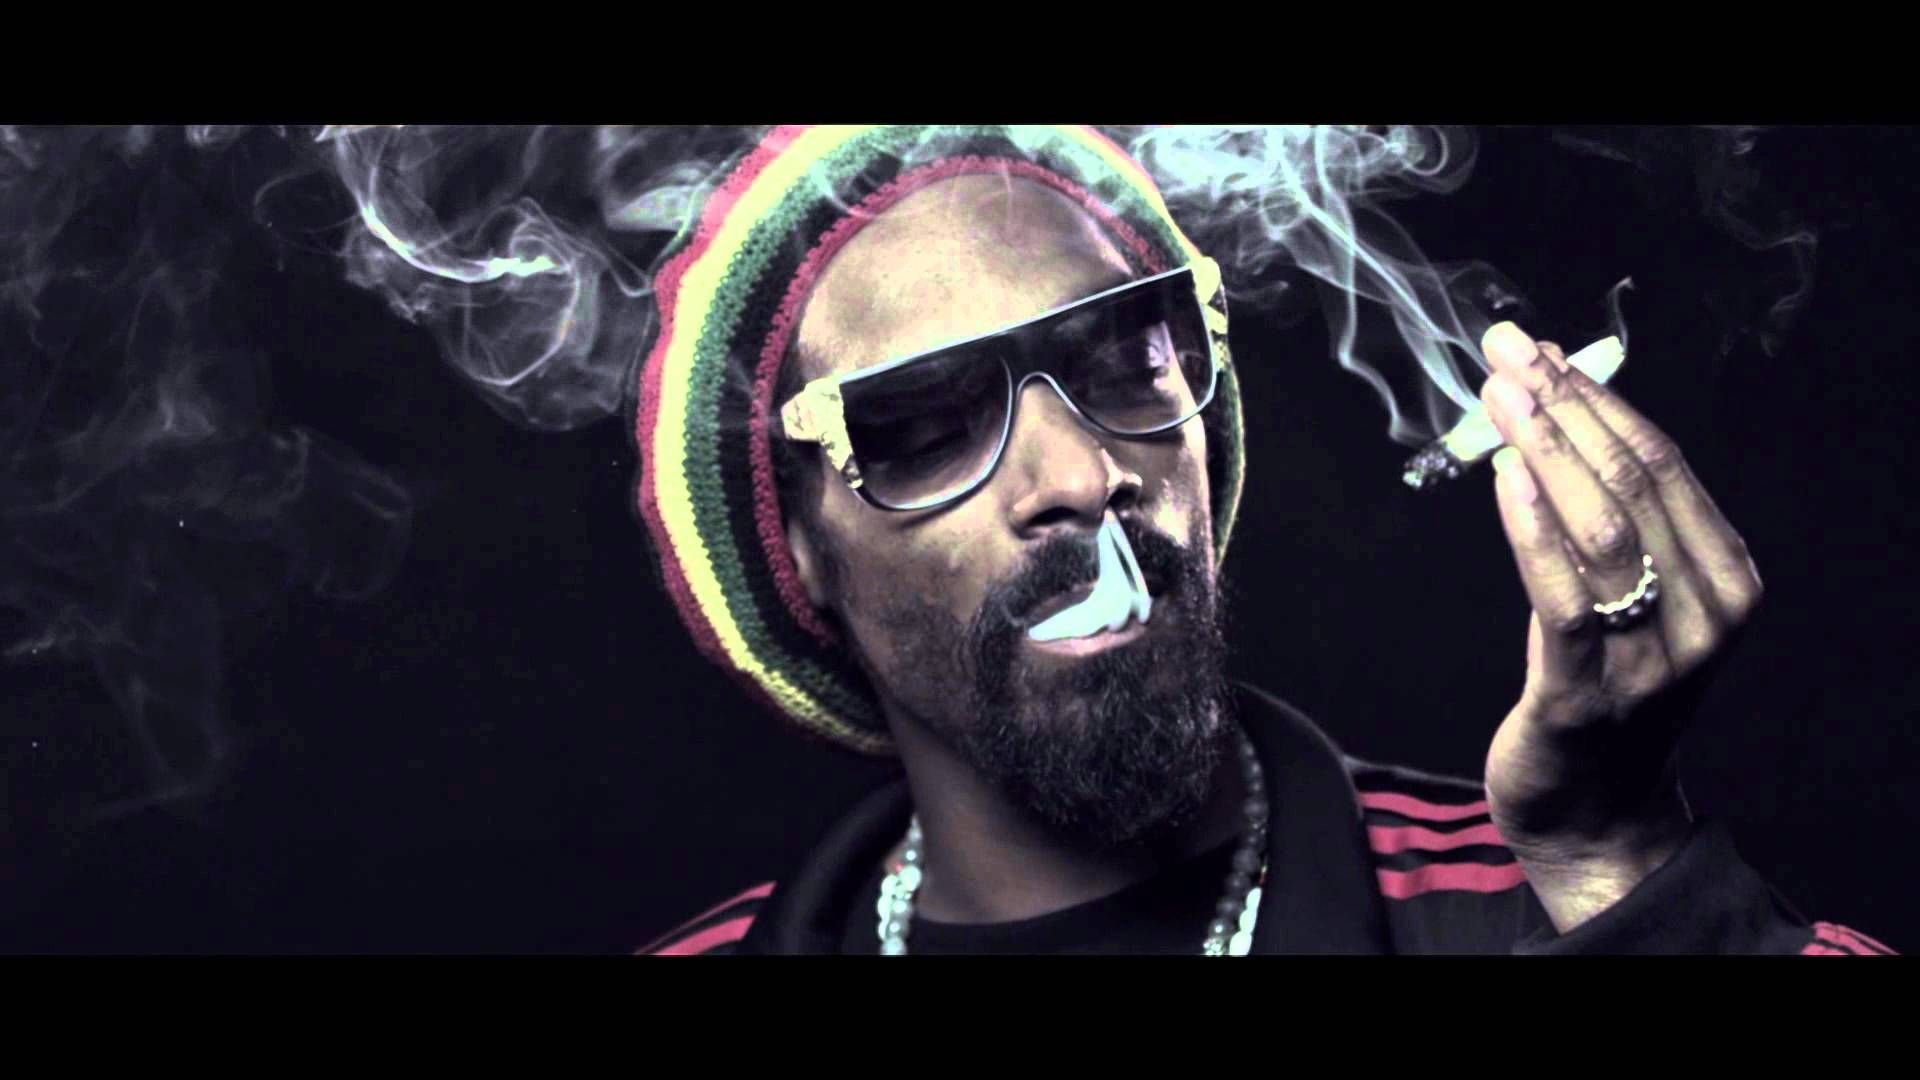 Snoop Dogg Weed Wallpapers Top Free Snoop Dogg Weed Backgrounds